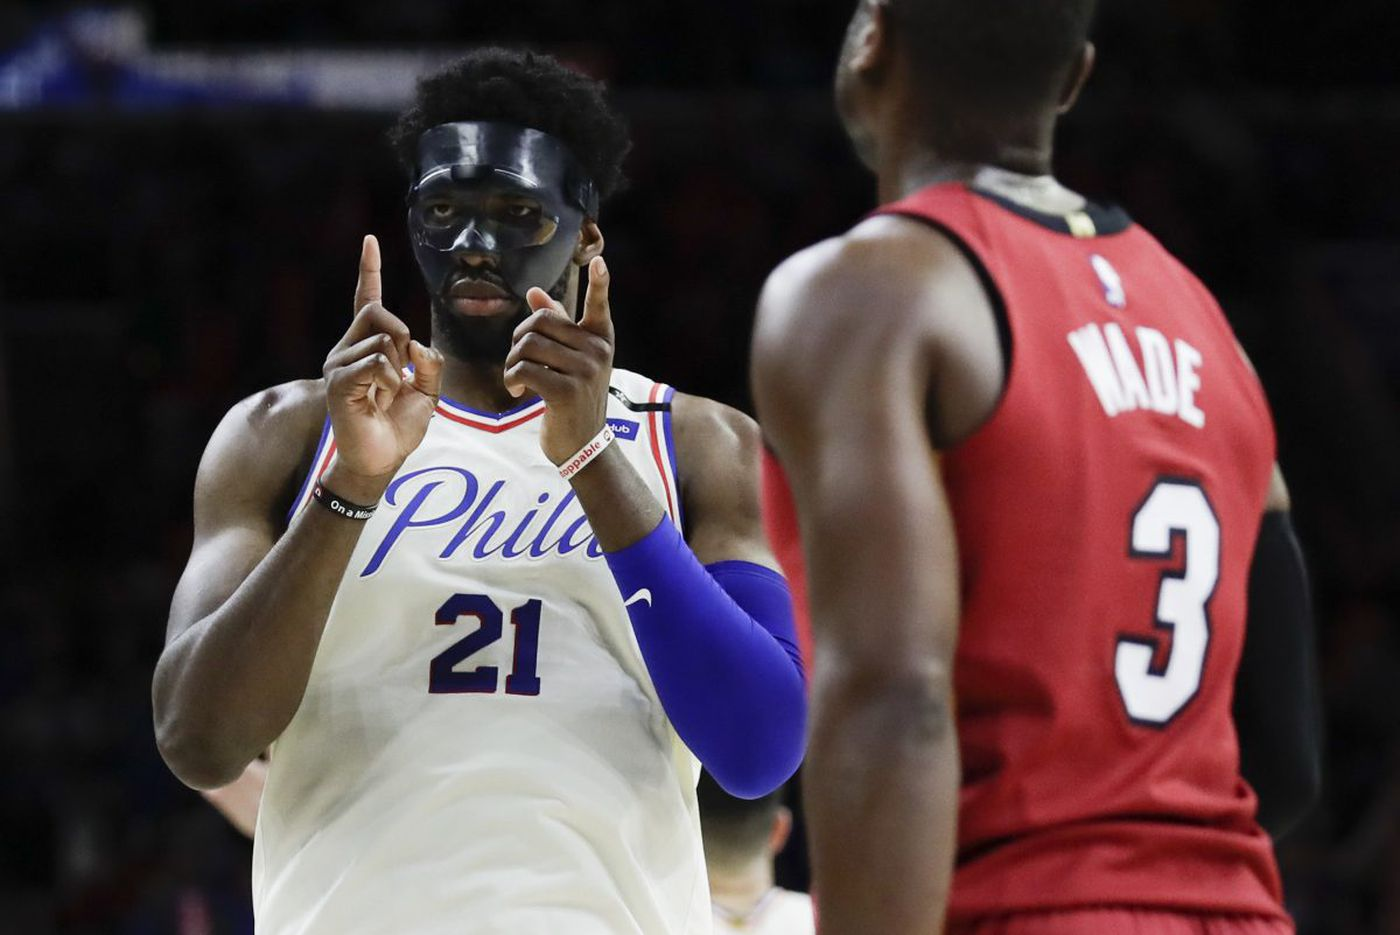 Sixers advance, Meek Mill released from prison, Jehovah's Witnesses' silent history of abuse | Morning Newsletter